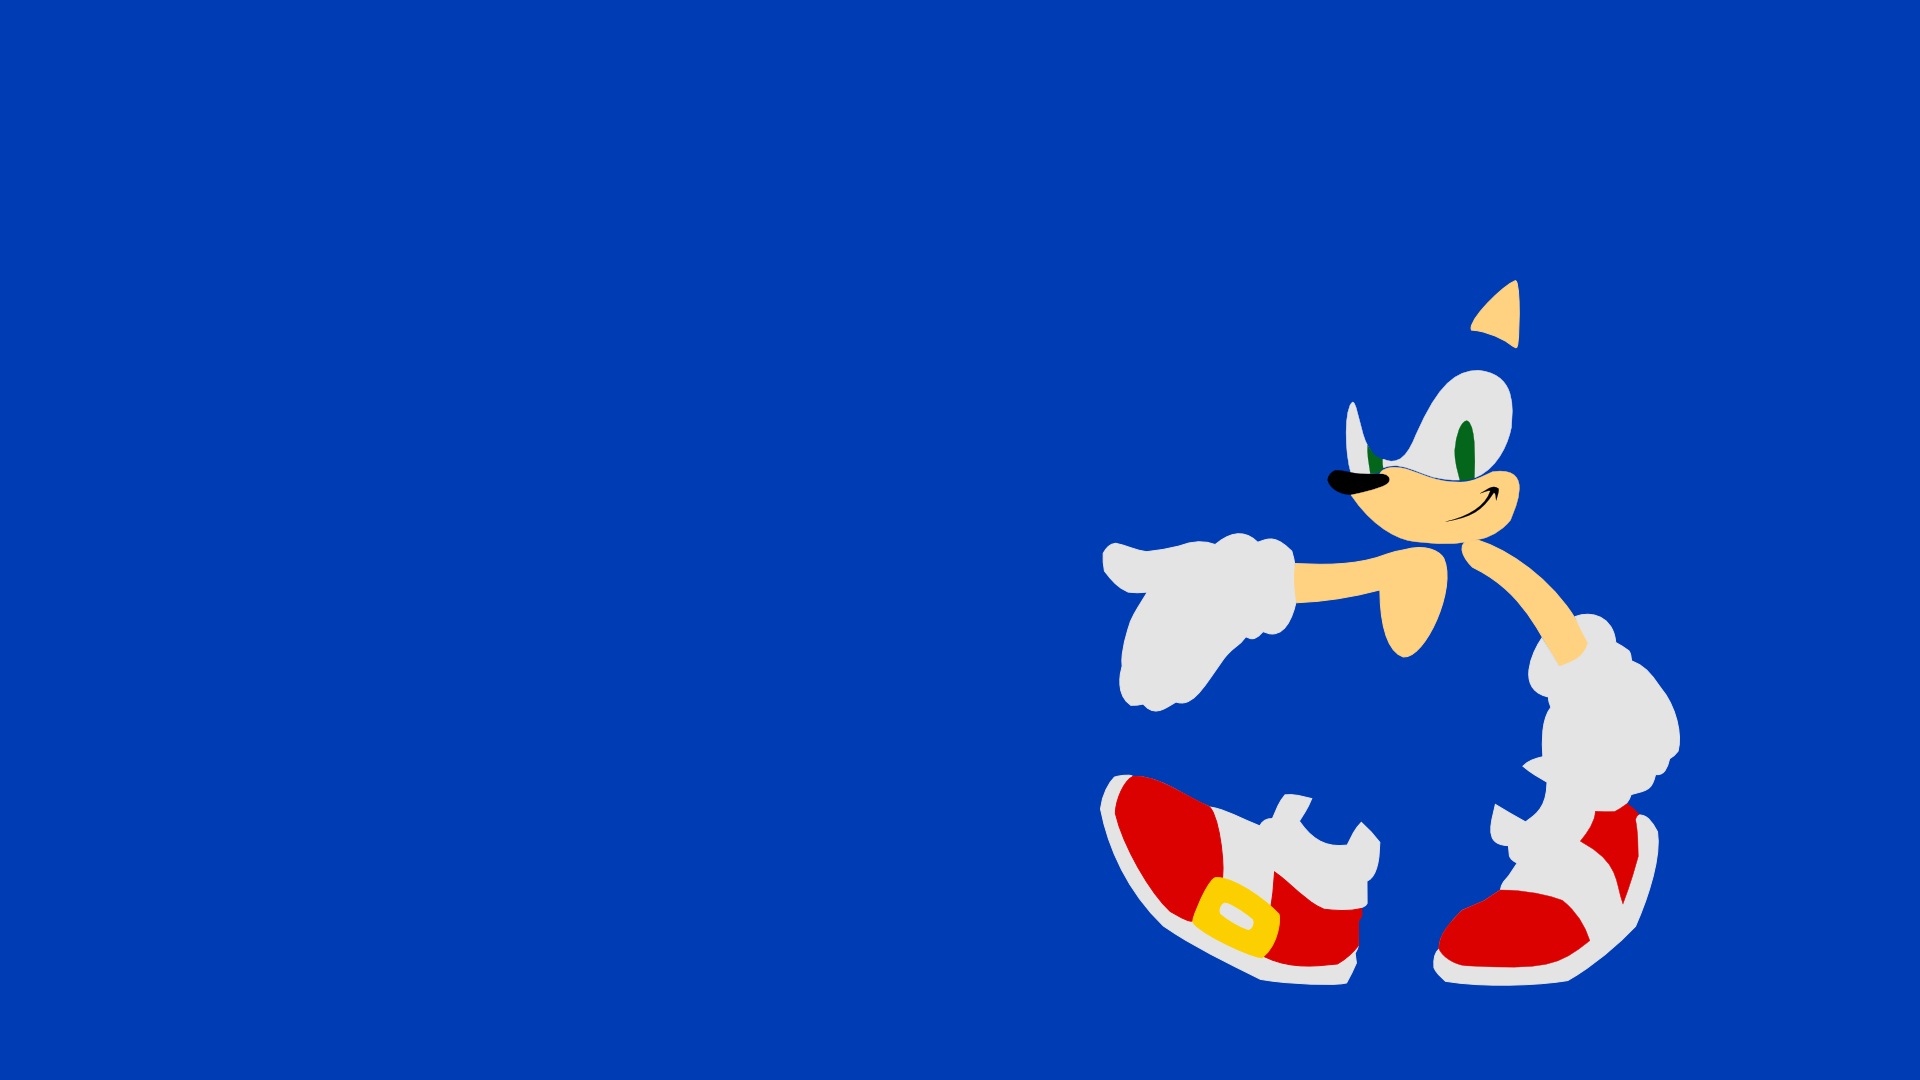 Classic Sonic And Tails Wallpaper By SonicTheHedgehogBG On